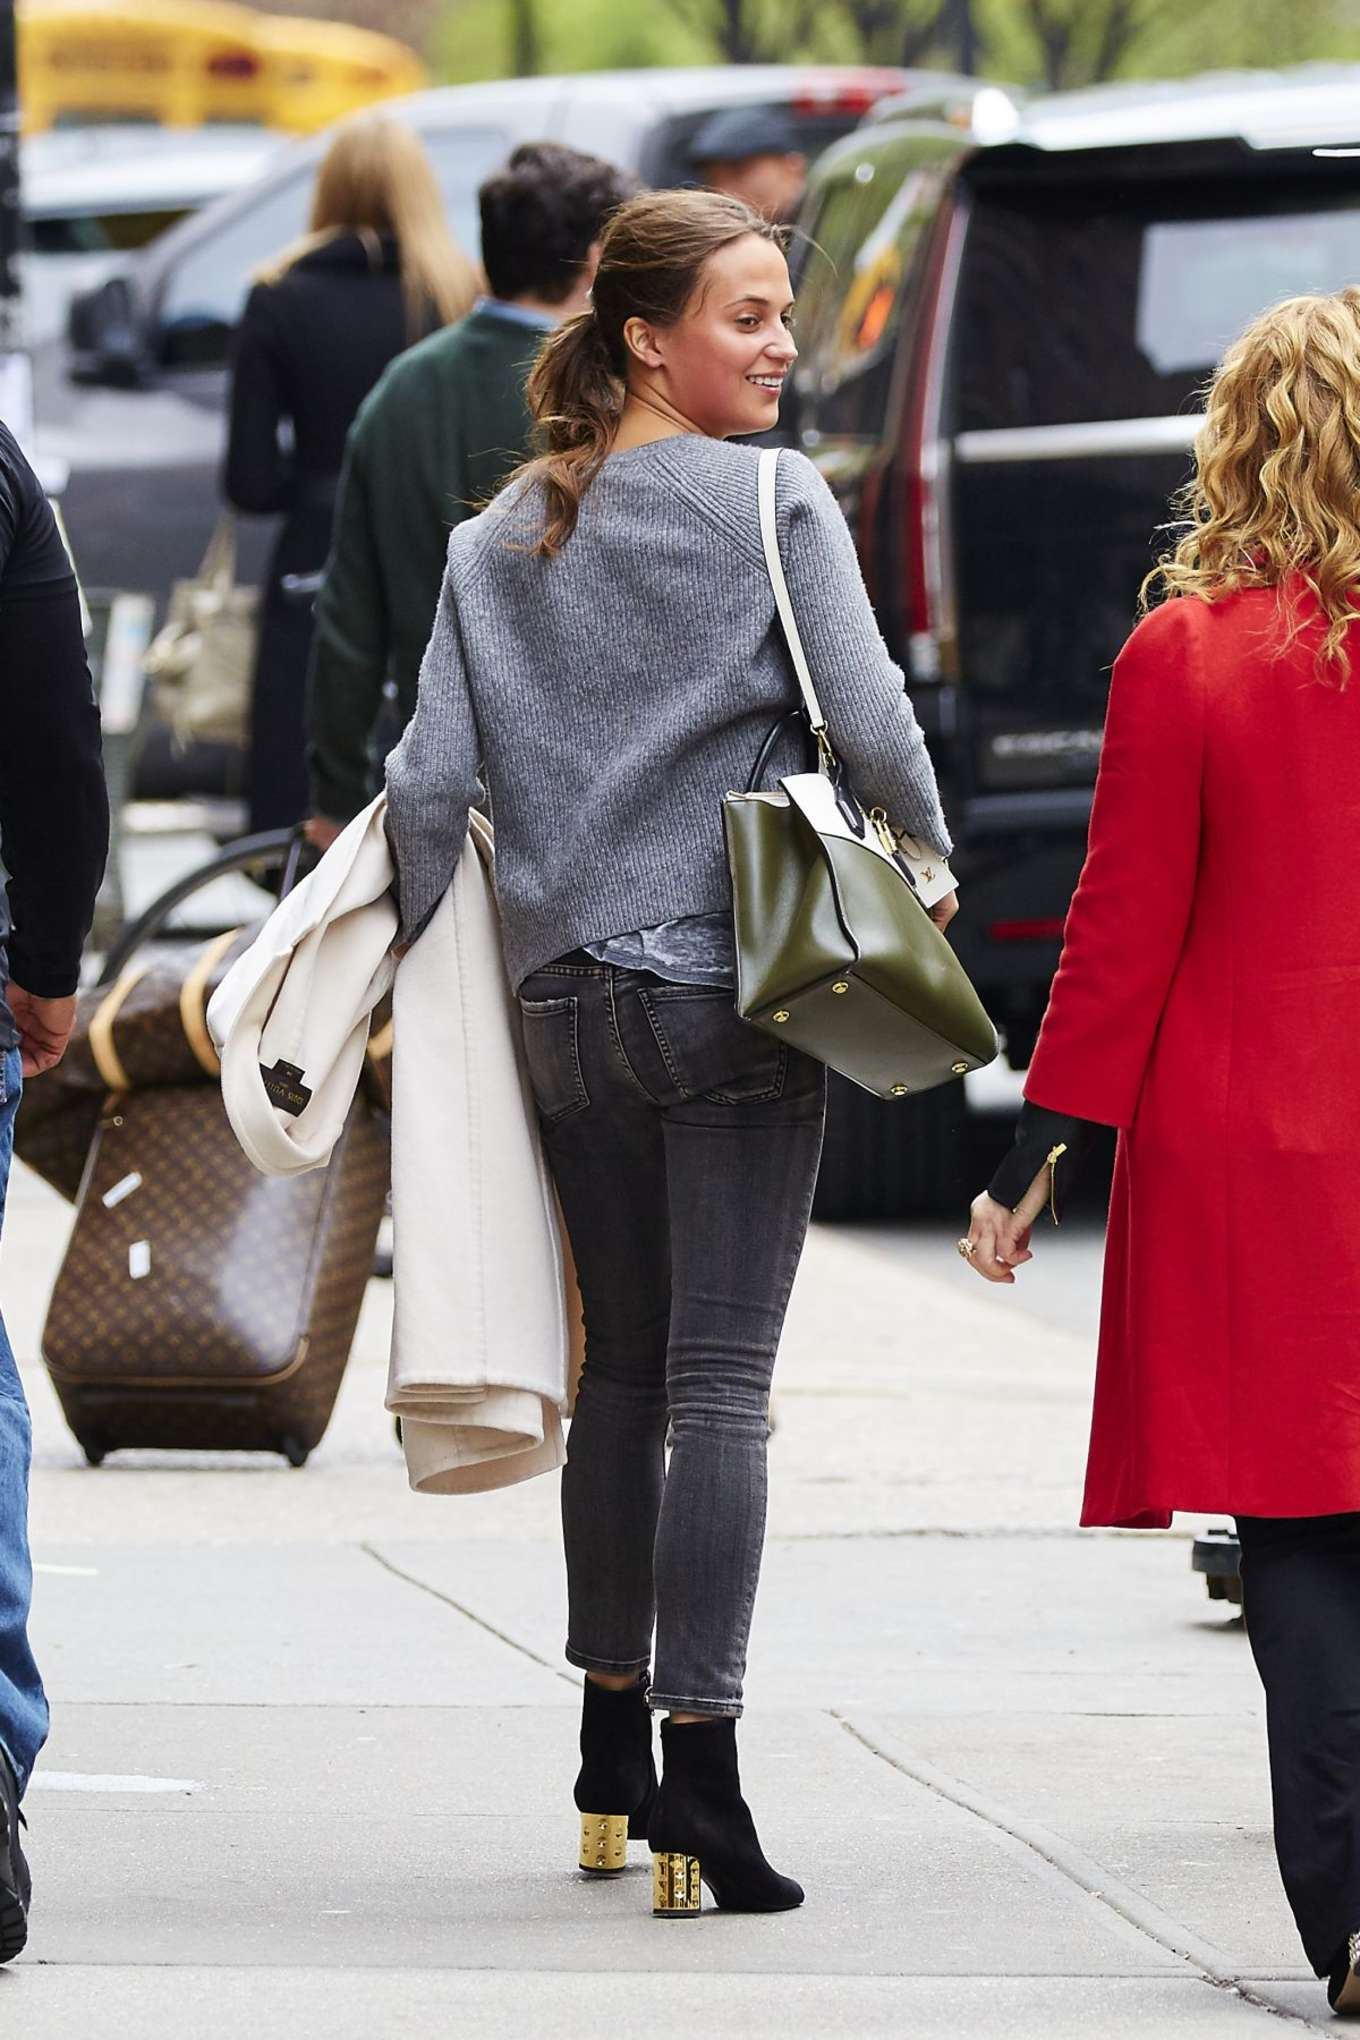 alicia vikander in jeans leaves her hotel 01 gotceleb